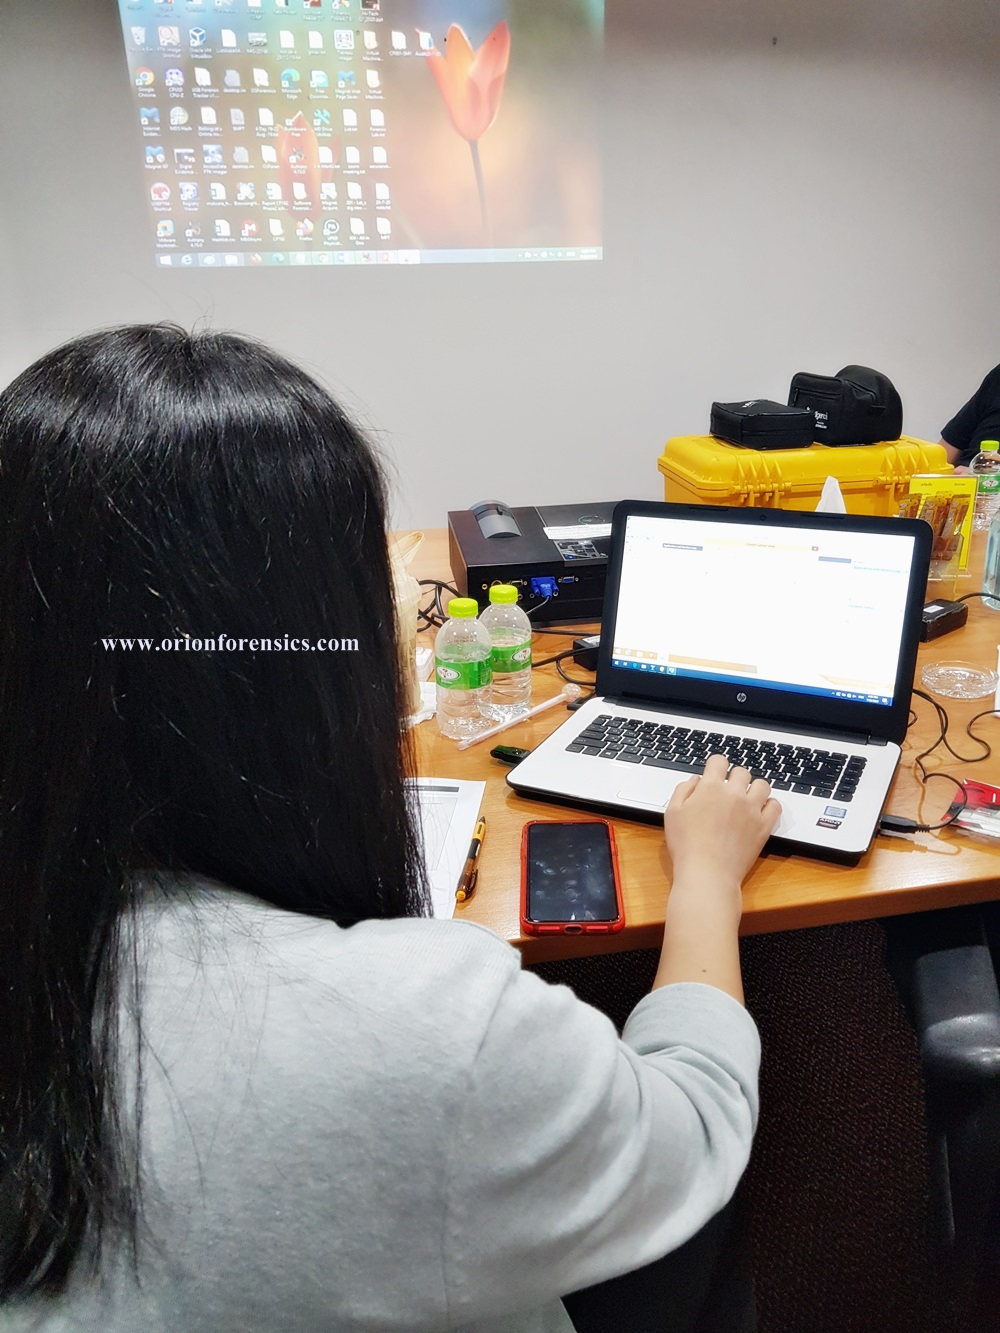 อบรม [Hands-on Workshop] Forensic Techniques for IT Auditors Course2